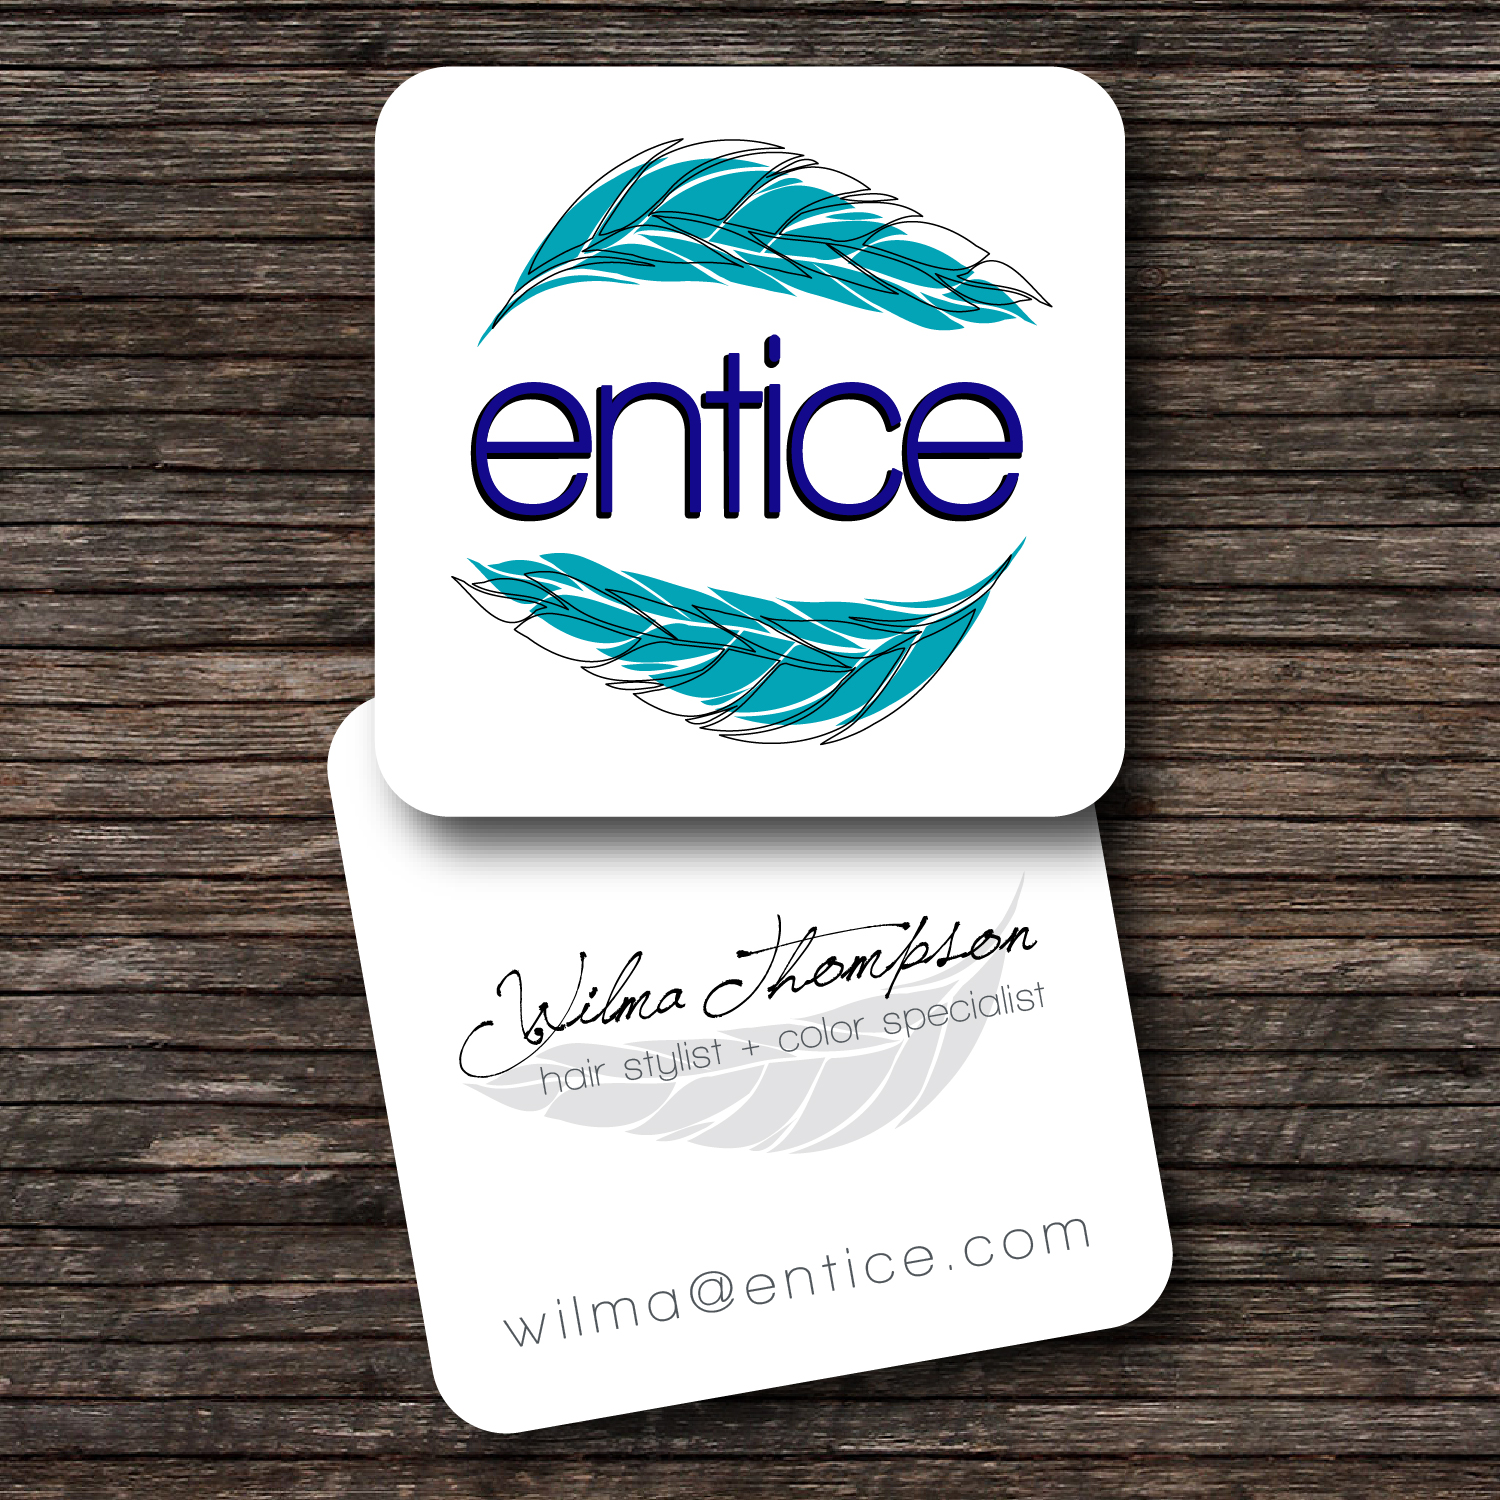 Entice Hair Salon